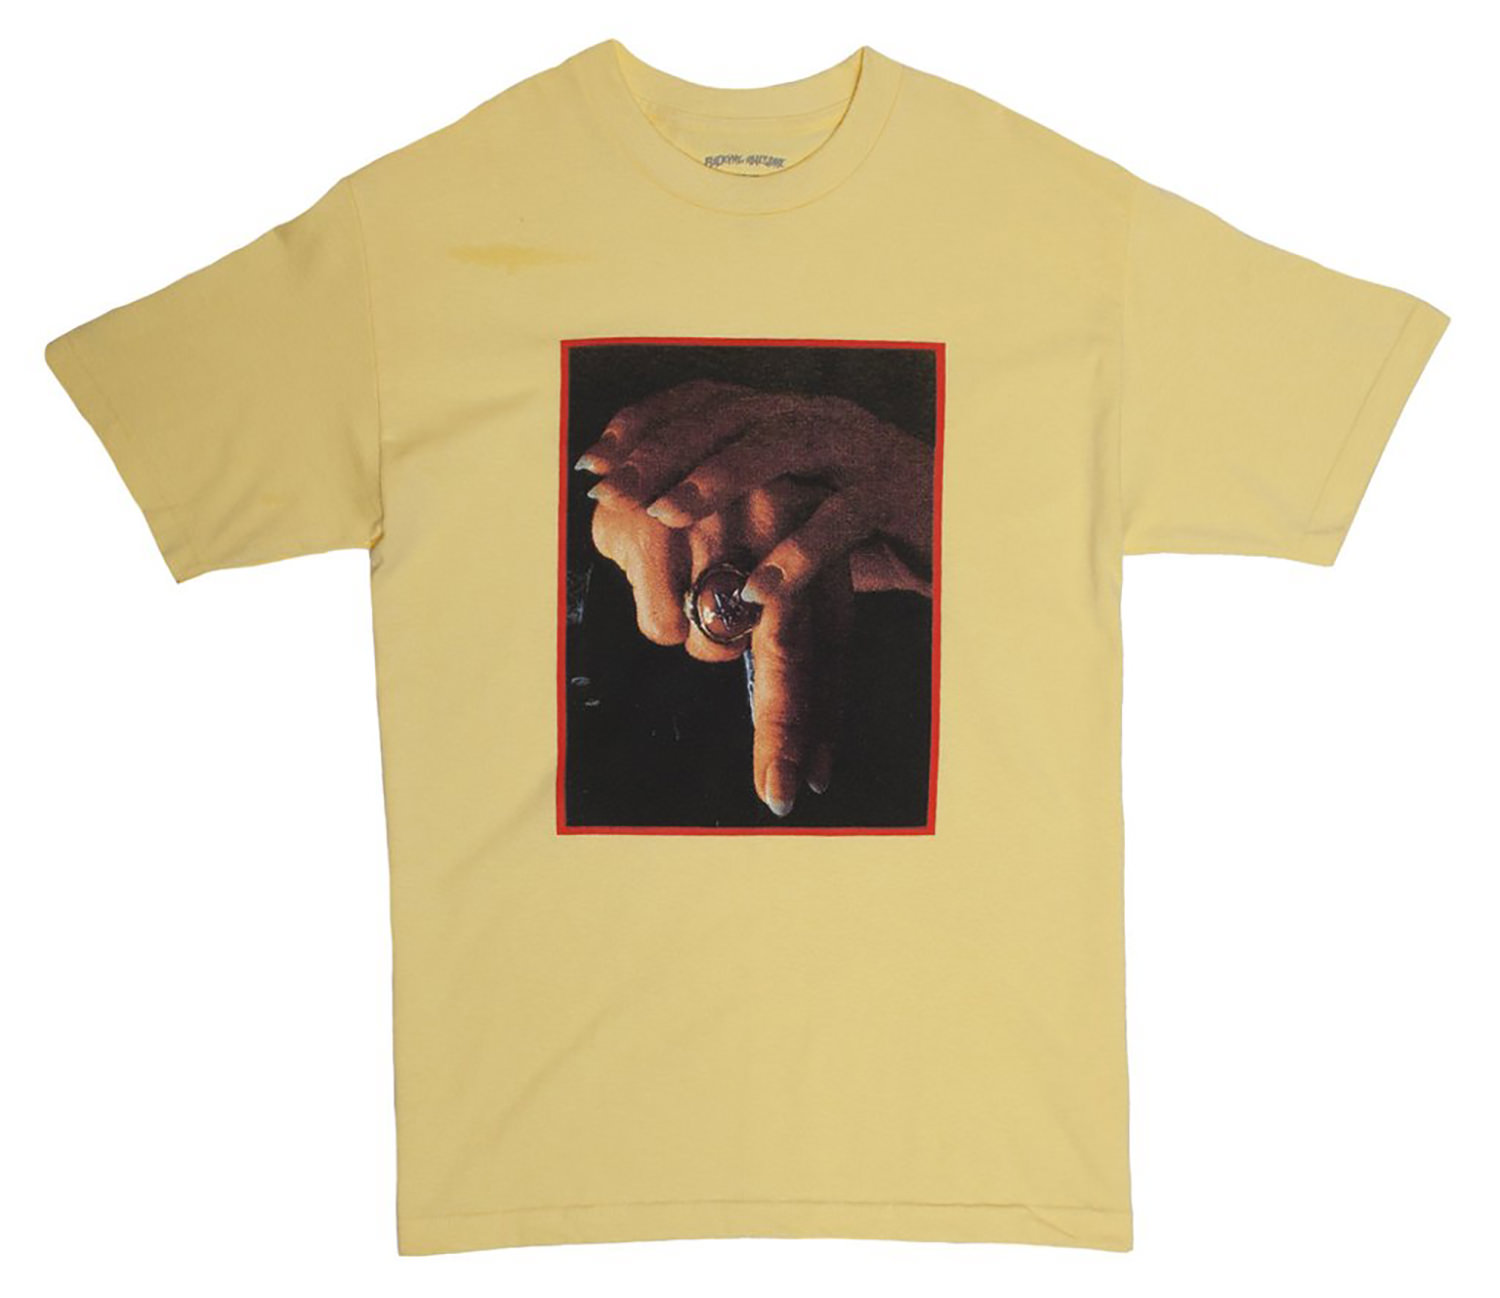 fa_fall16_angelhands_tee_yellow_front_web_1024x1024